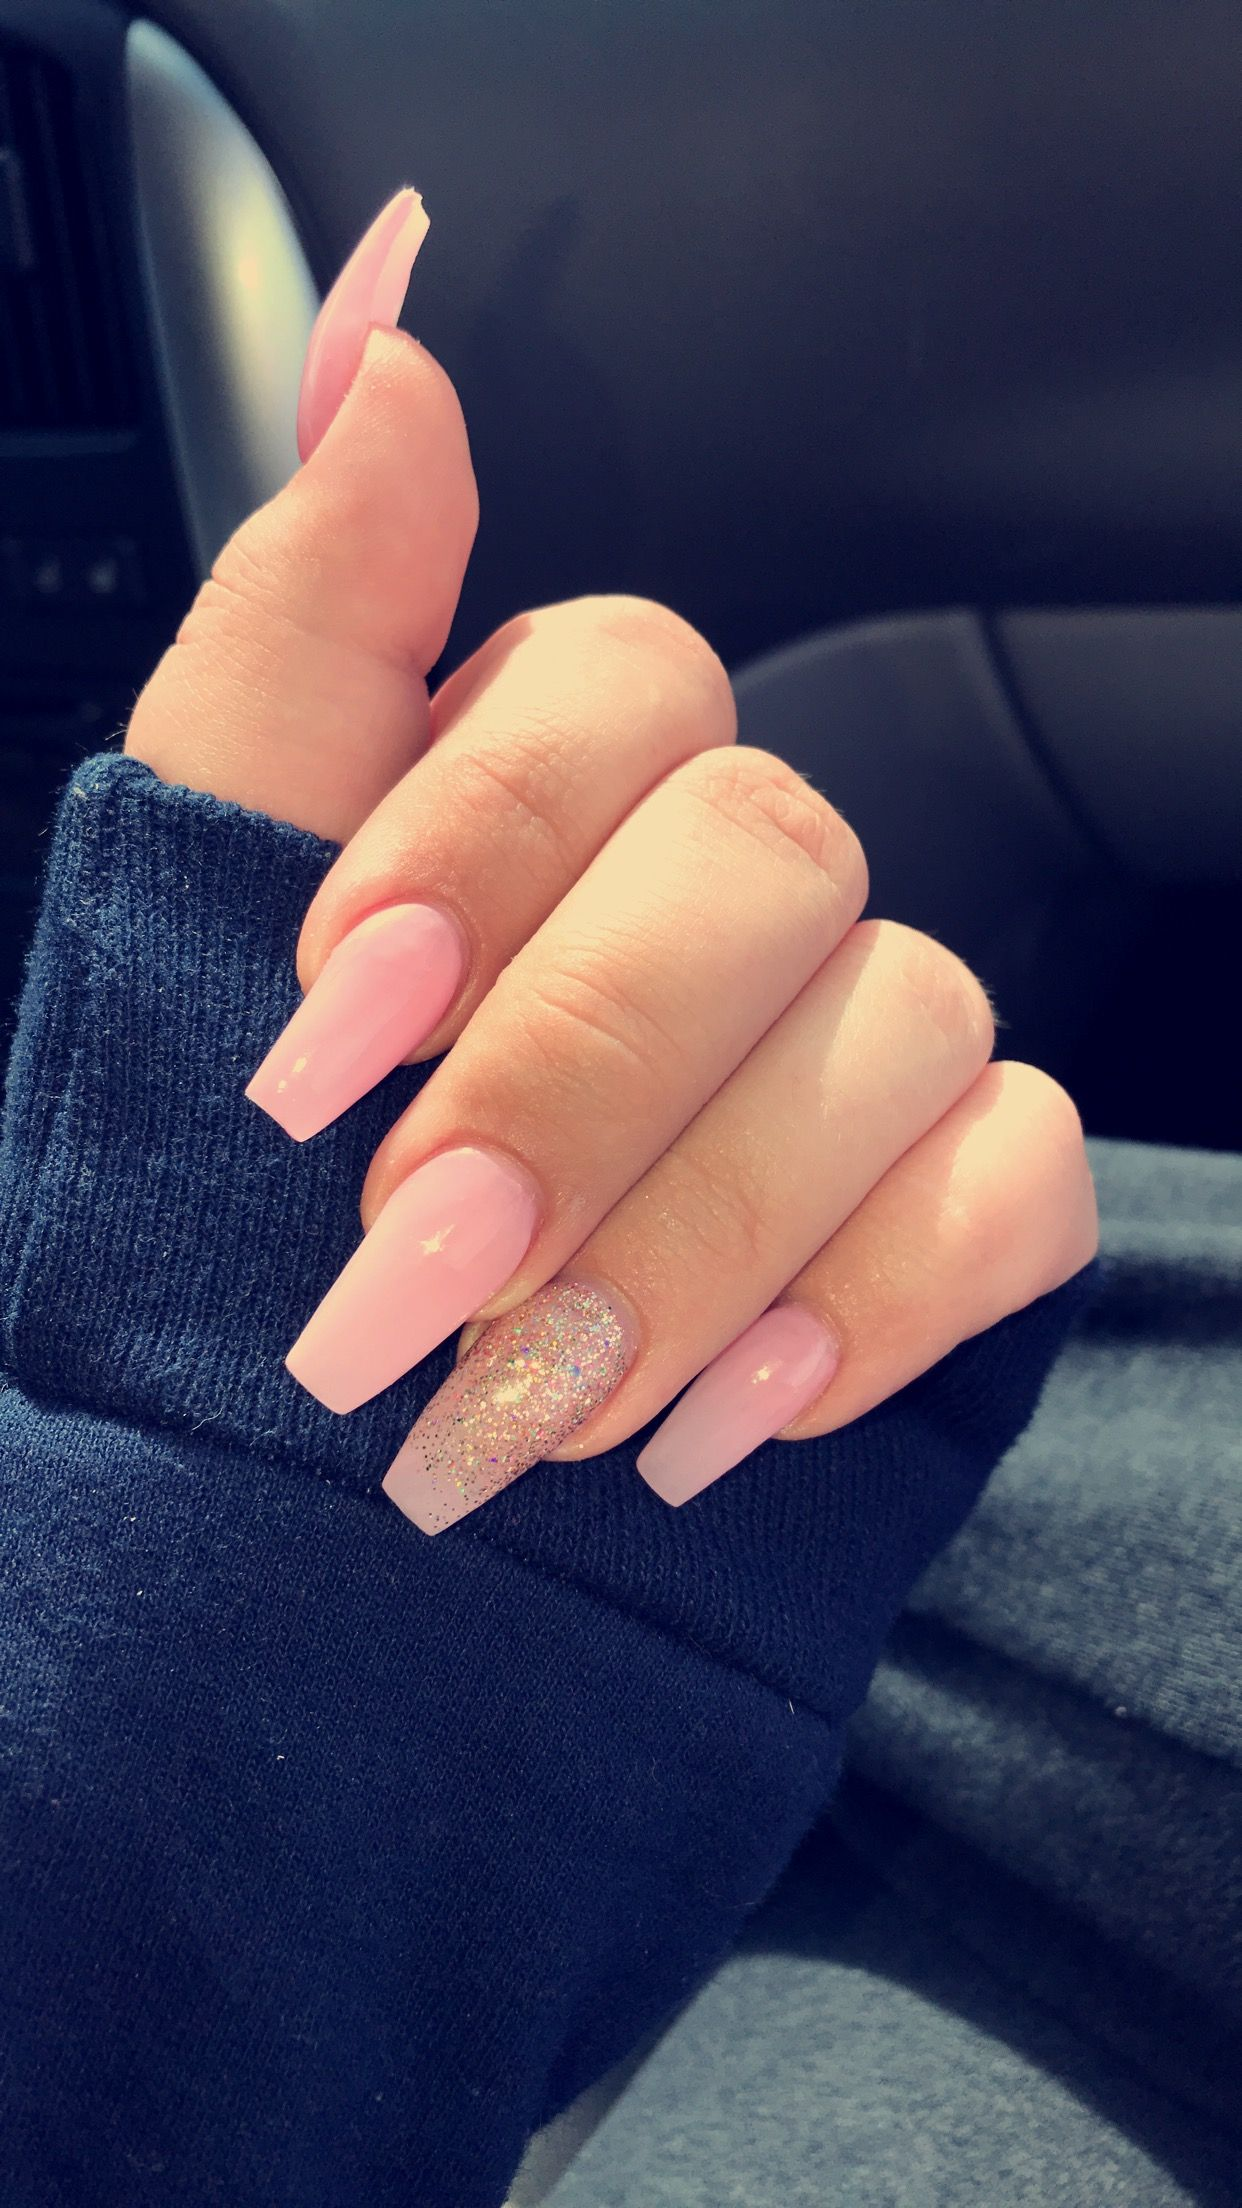 Pin by Jessica Weiswasser on my nails